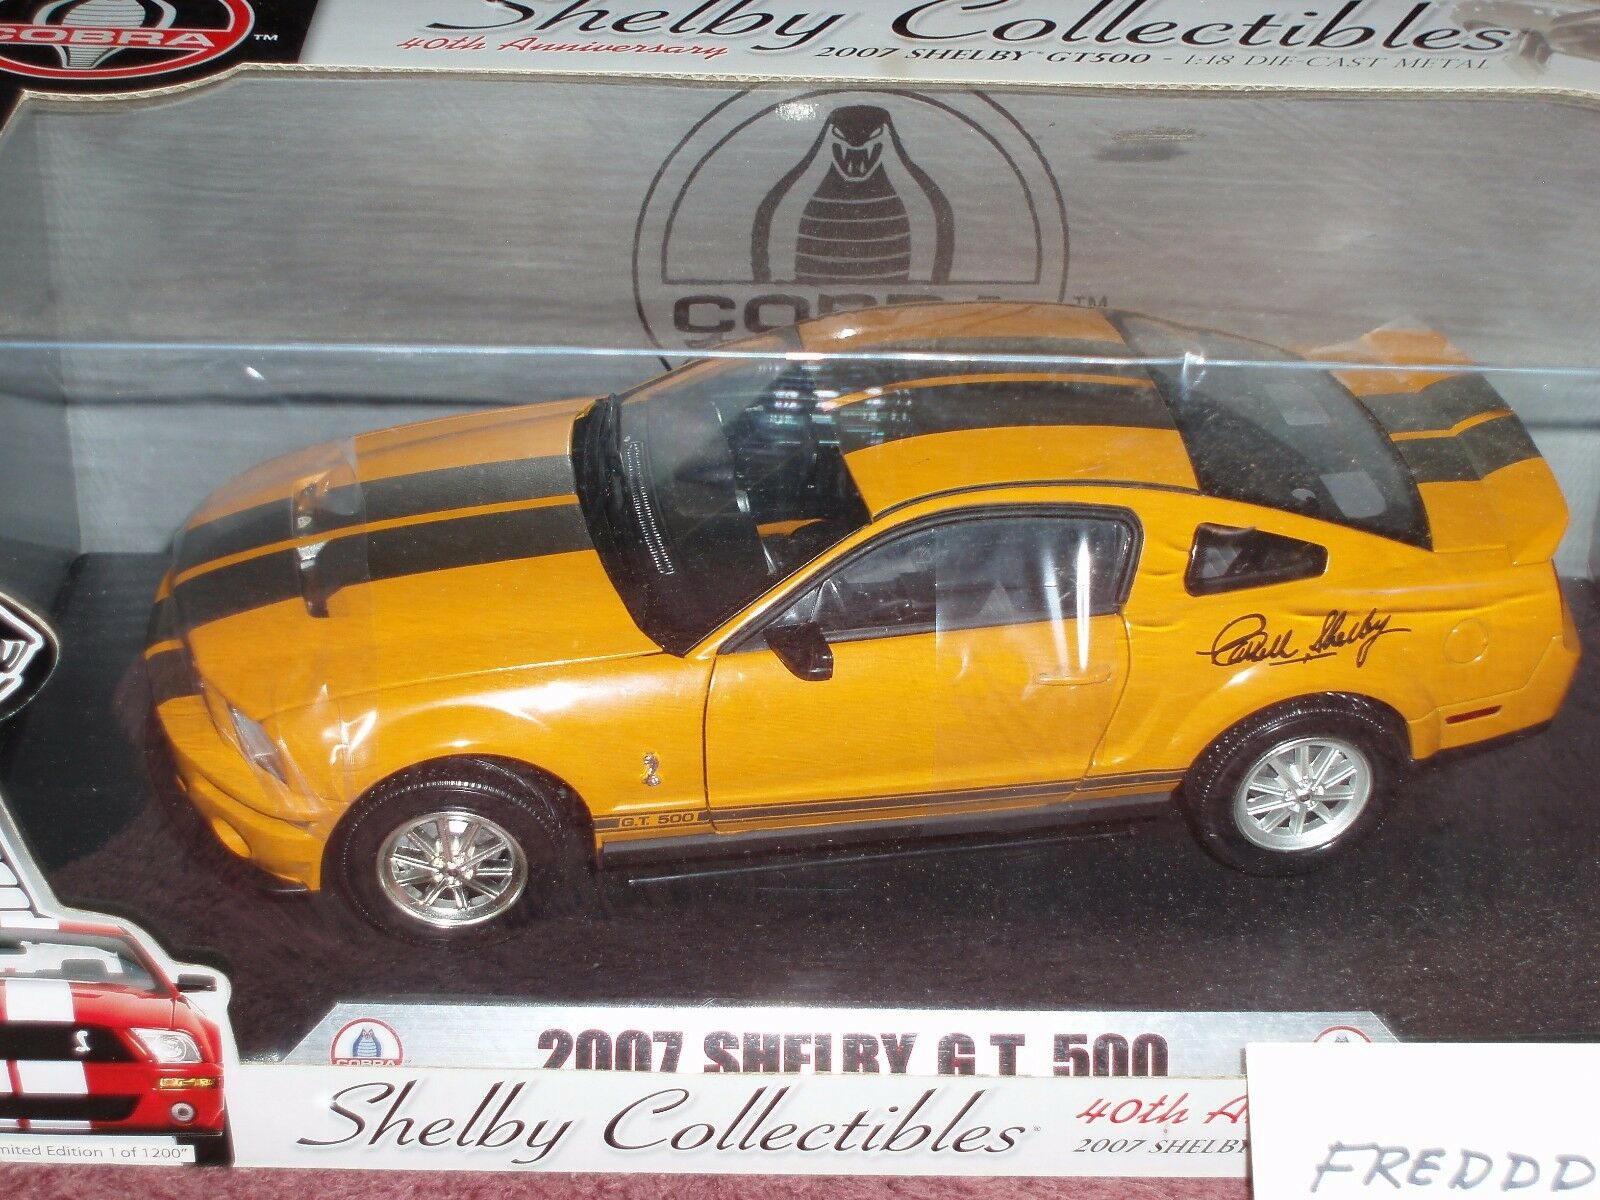 Shelby Collectibles 2007 Ford Shelby Mustang GT500 1 18 Signature Edition